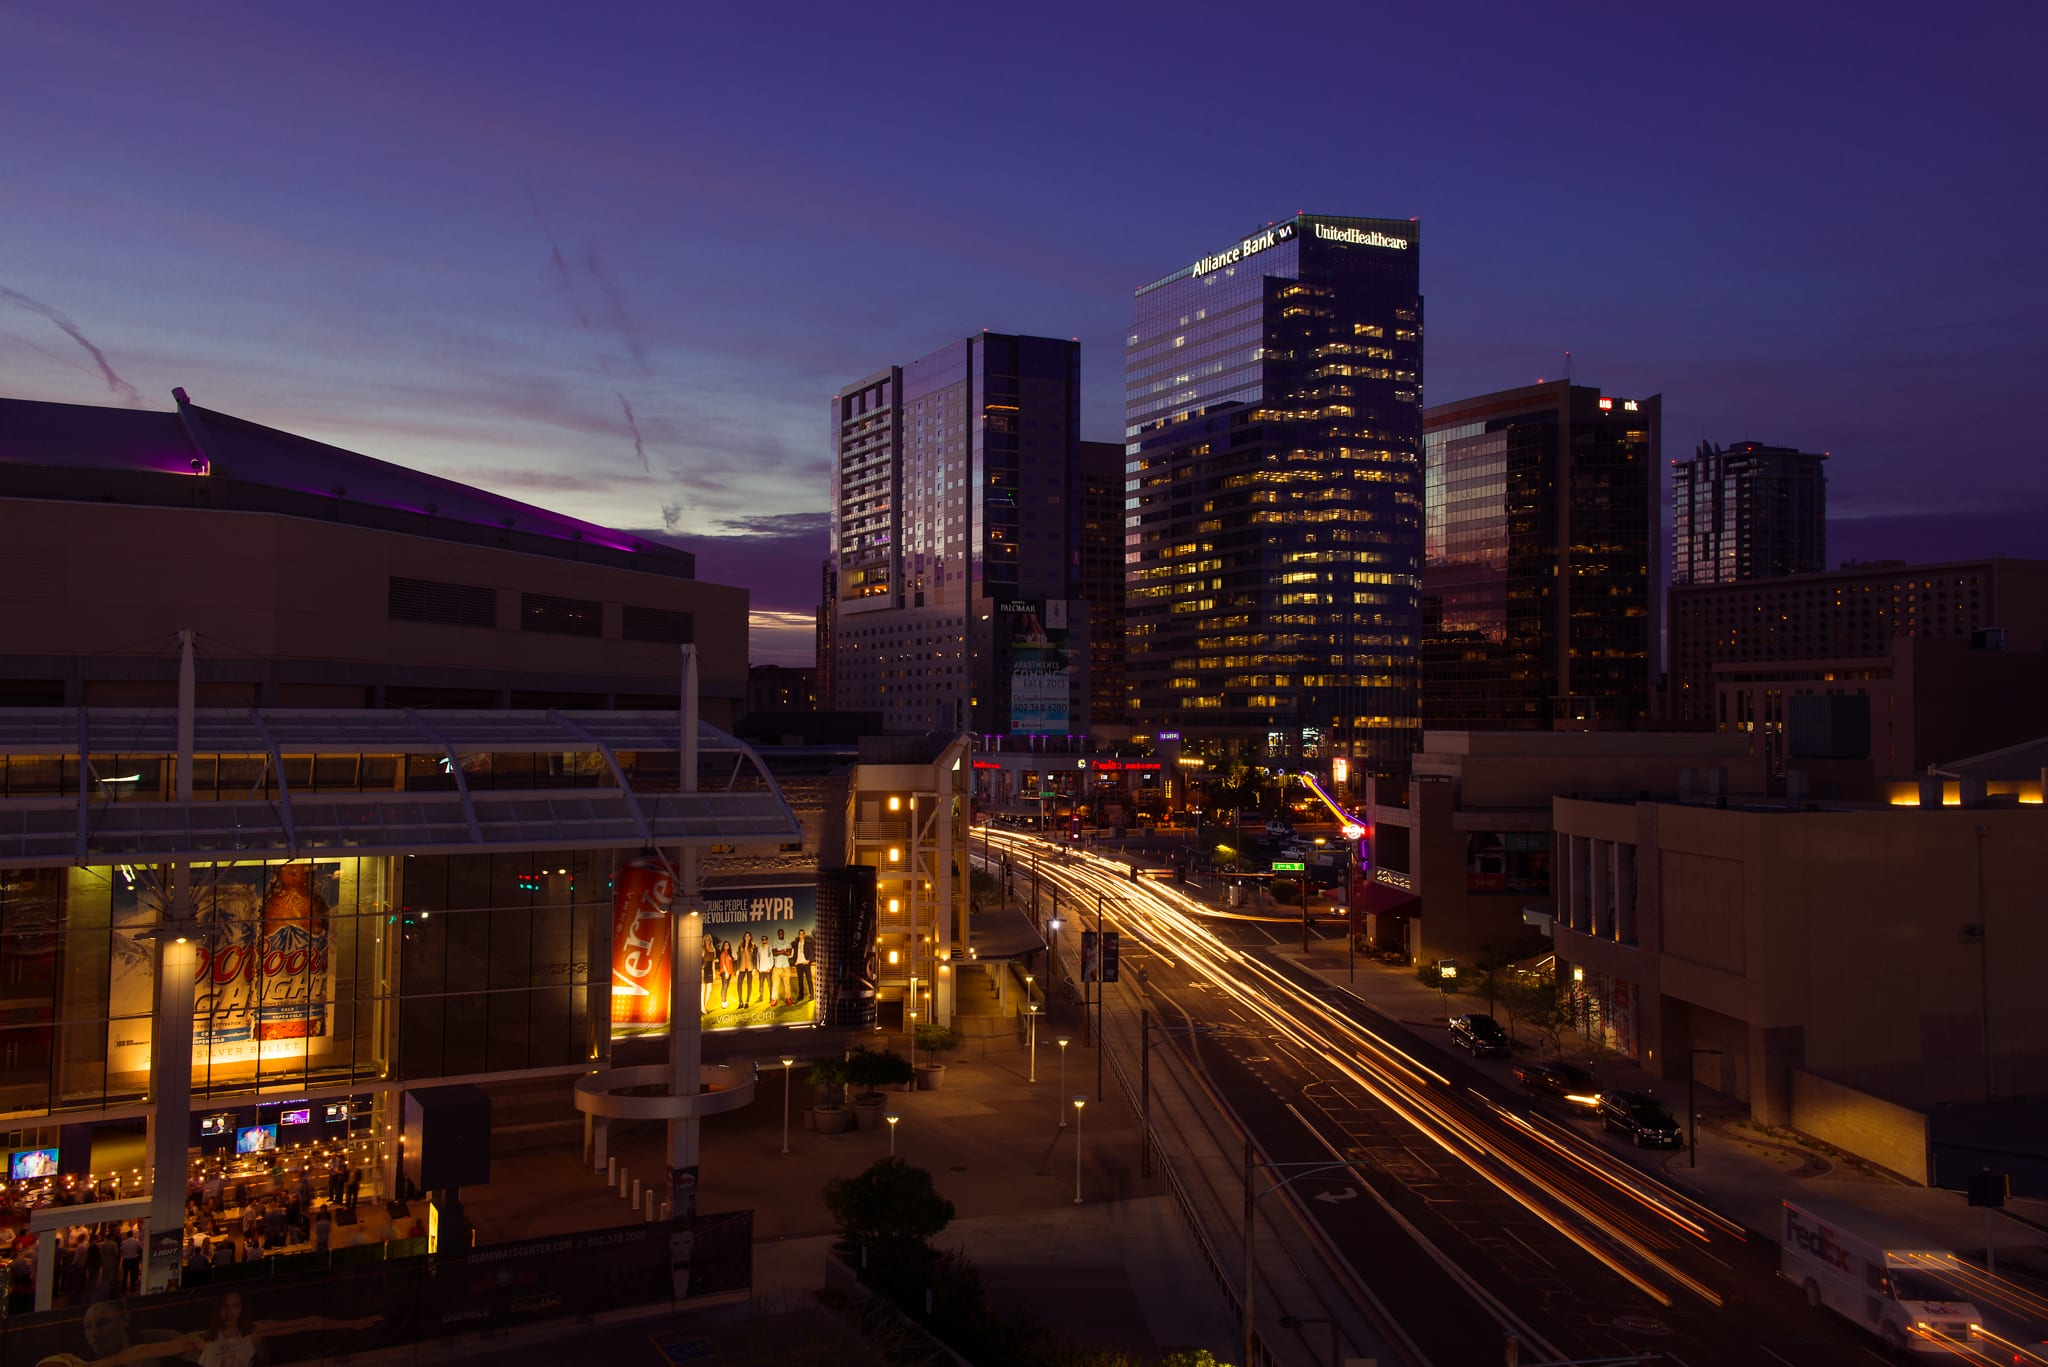 Downtown Phoenix at night